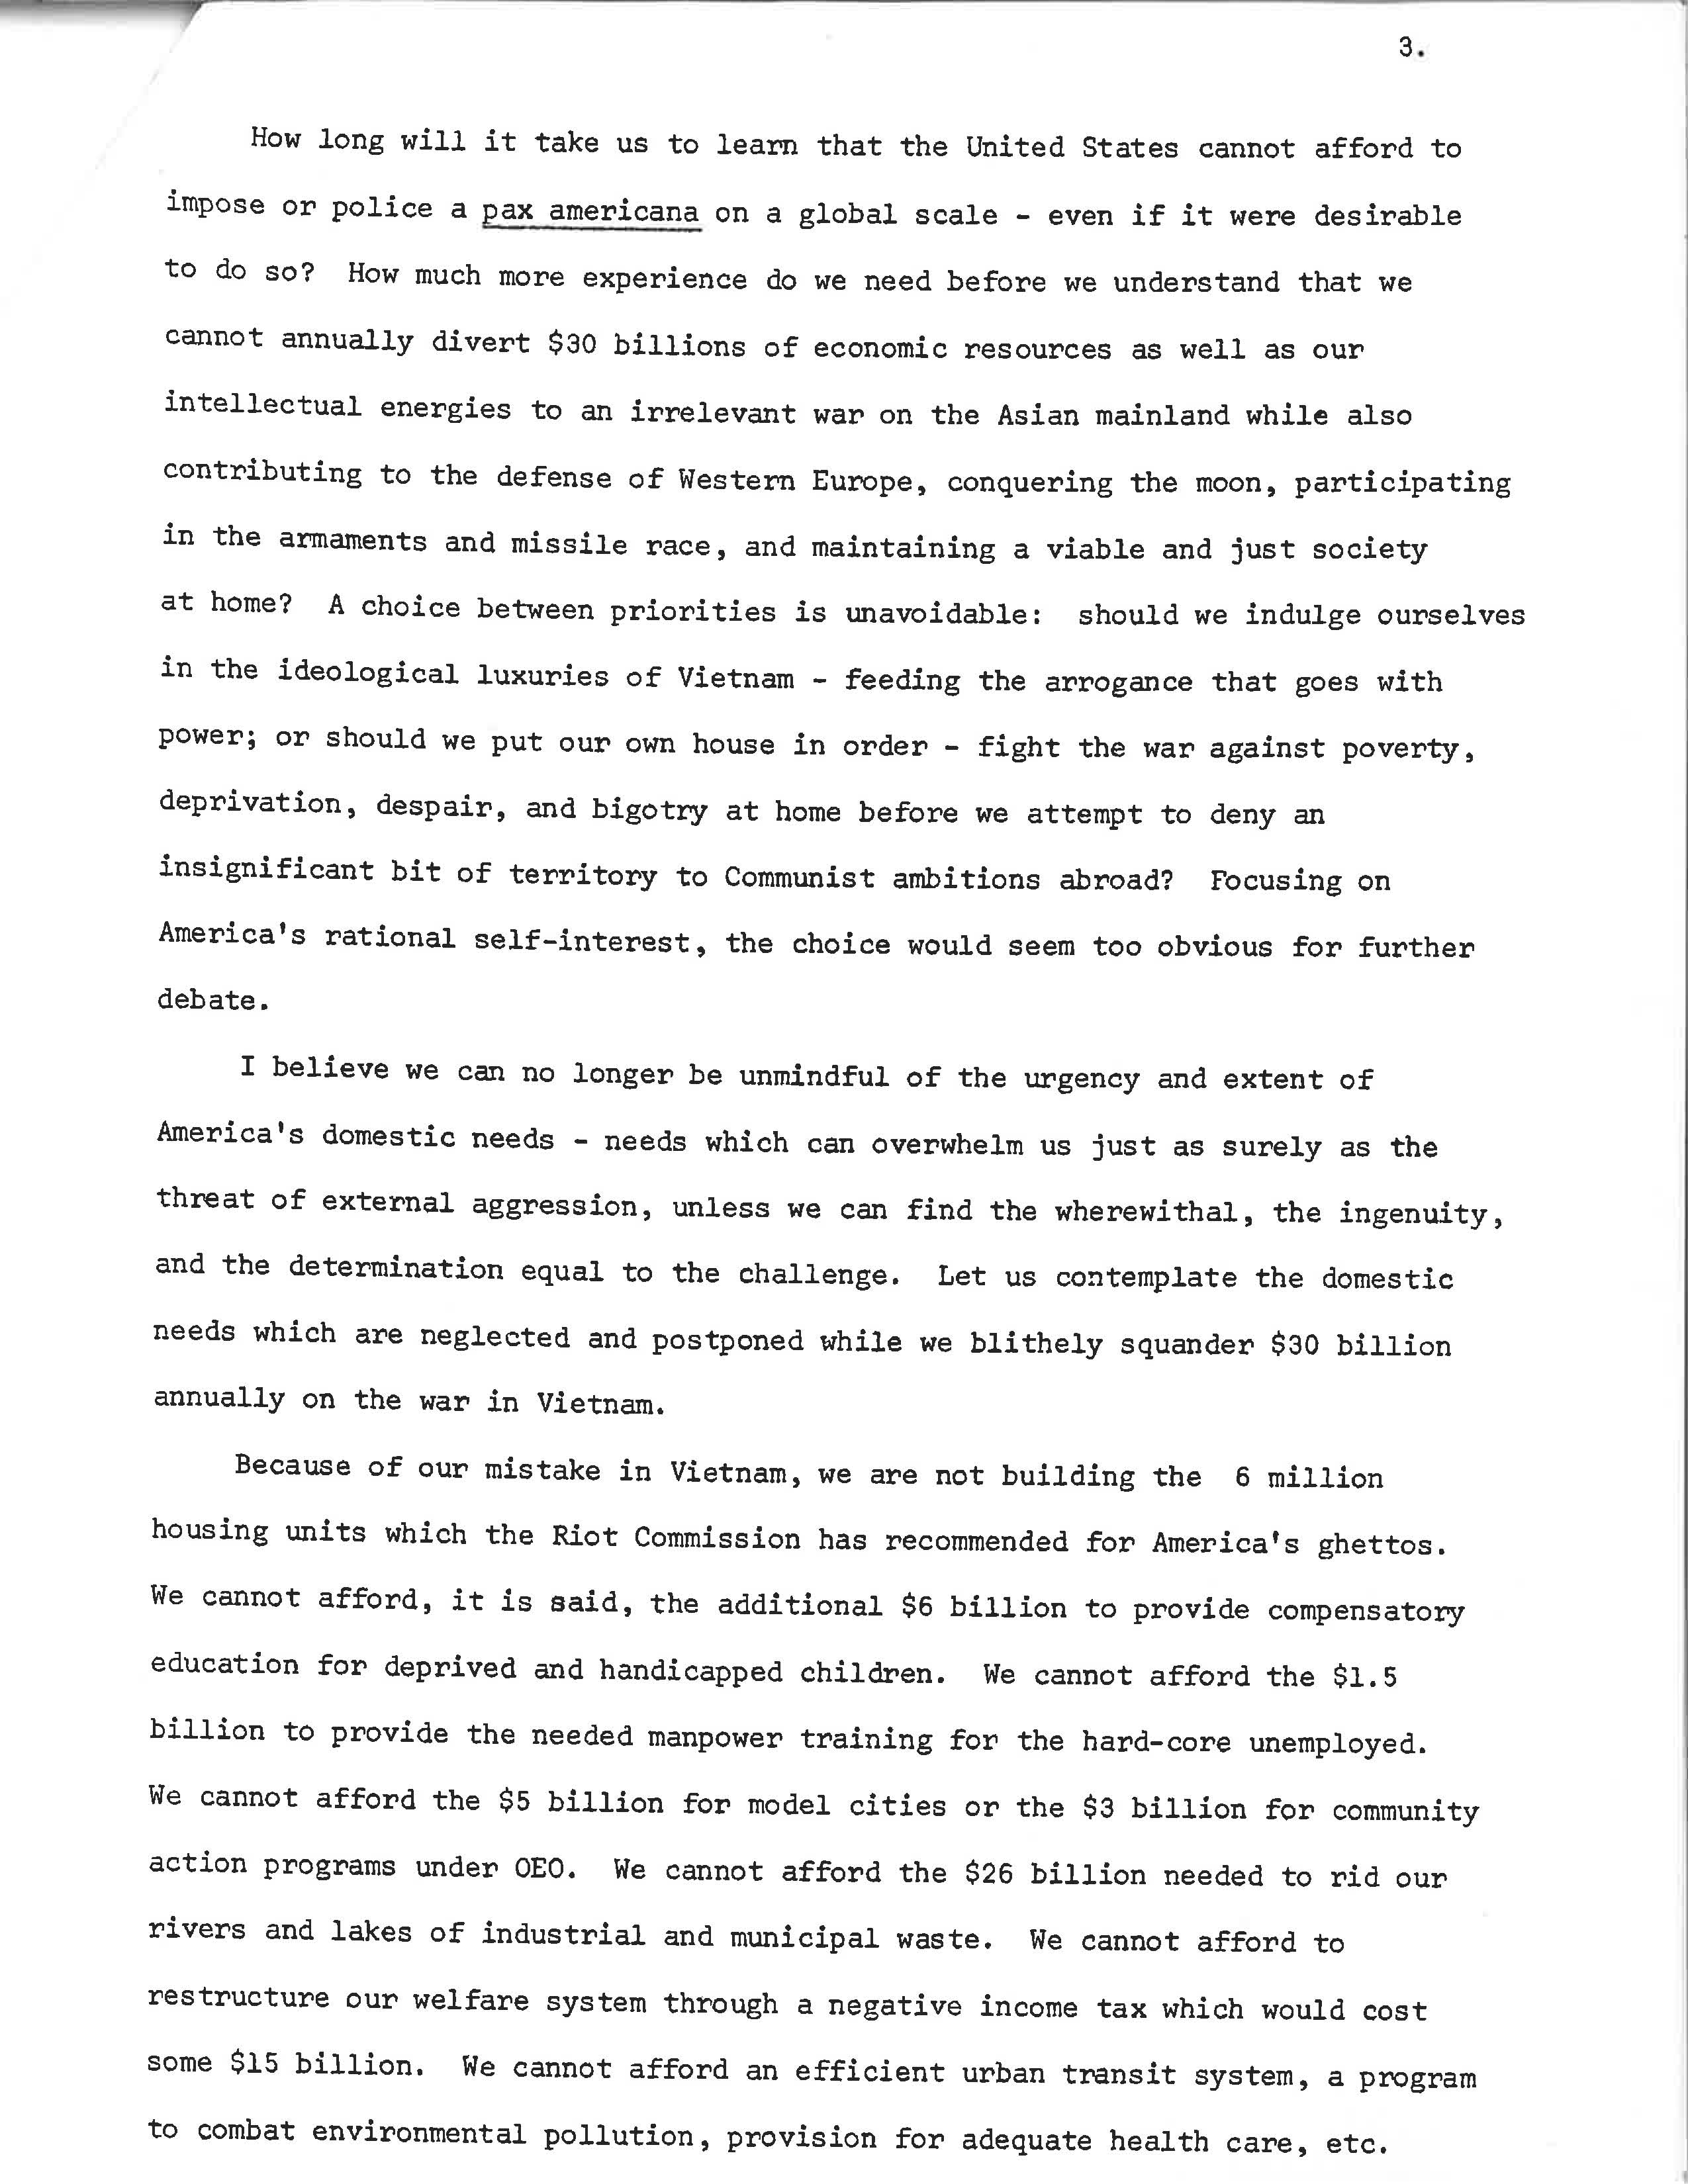 Walter Adams Remarks, Page 4